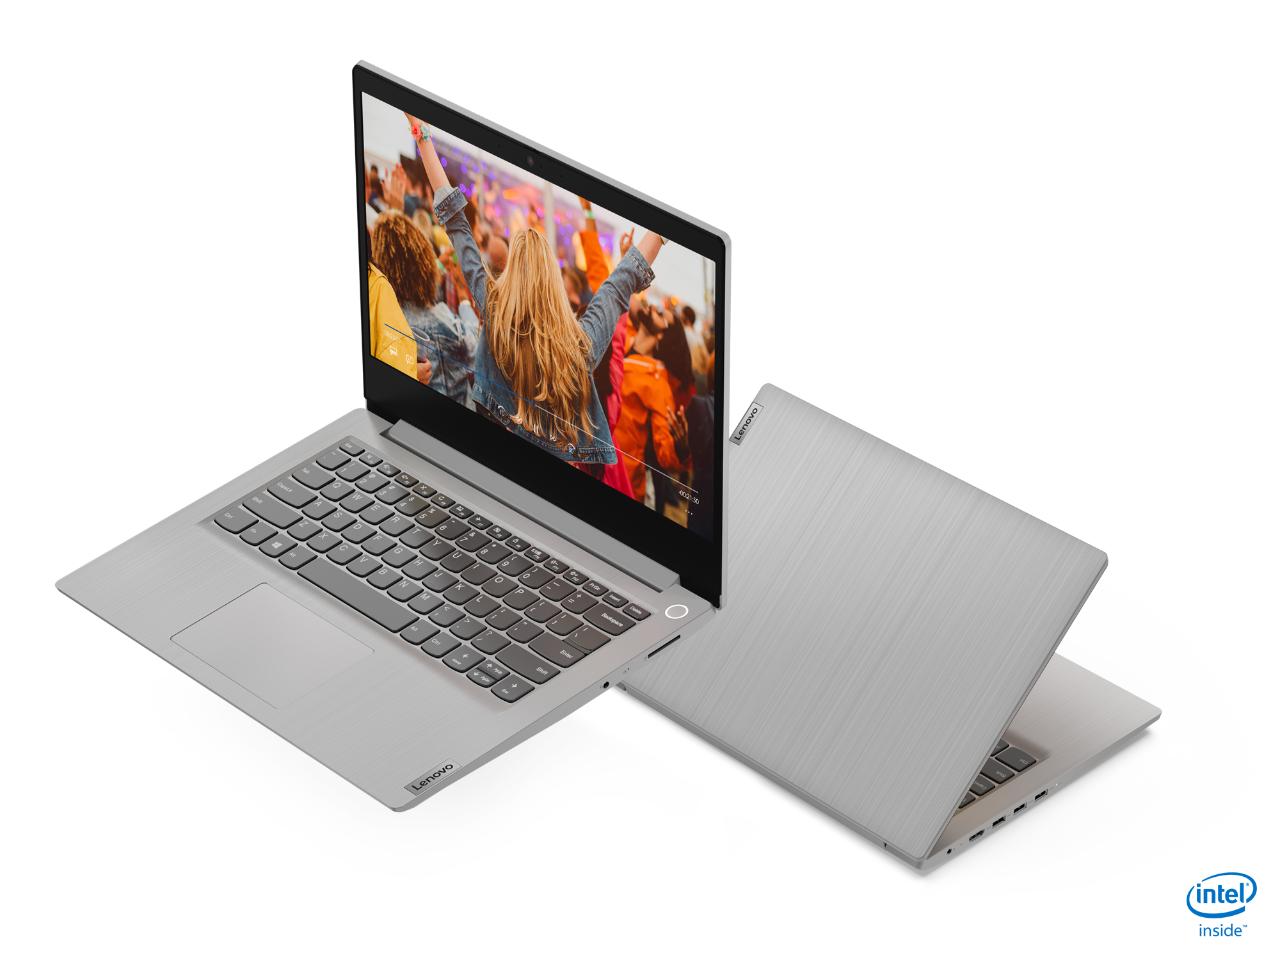 16 IDEAPAD 3 14INCH IMR PLATINUM GREY NON BACKLIT KB FPR INTEL HERO DUO BACK FRONT 1280x1280 1